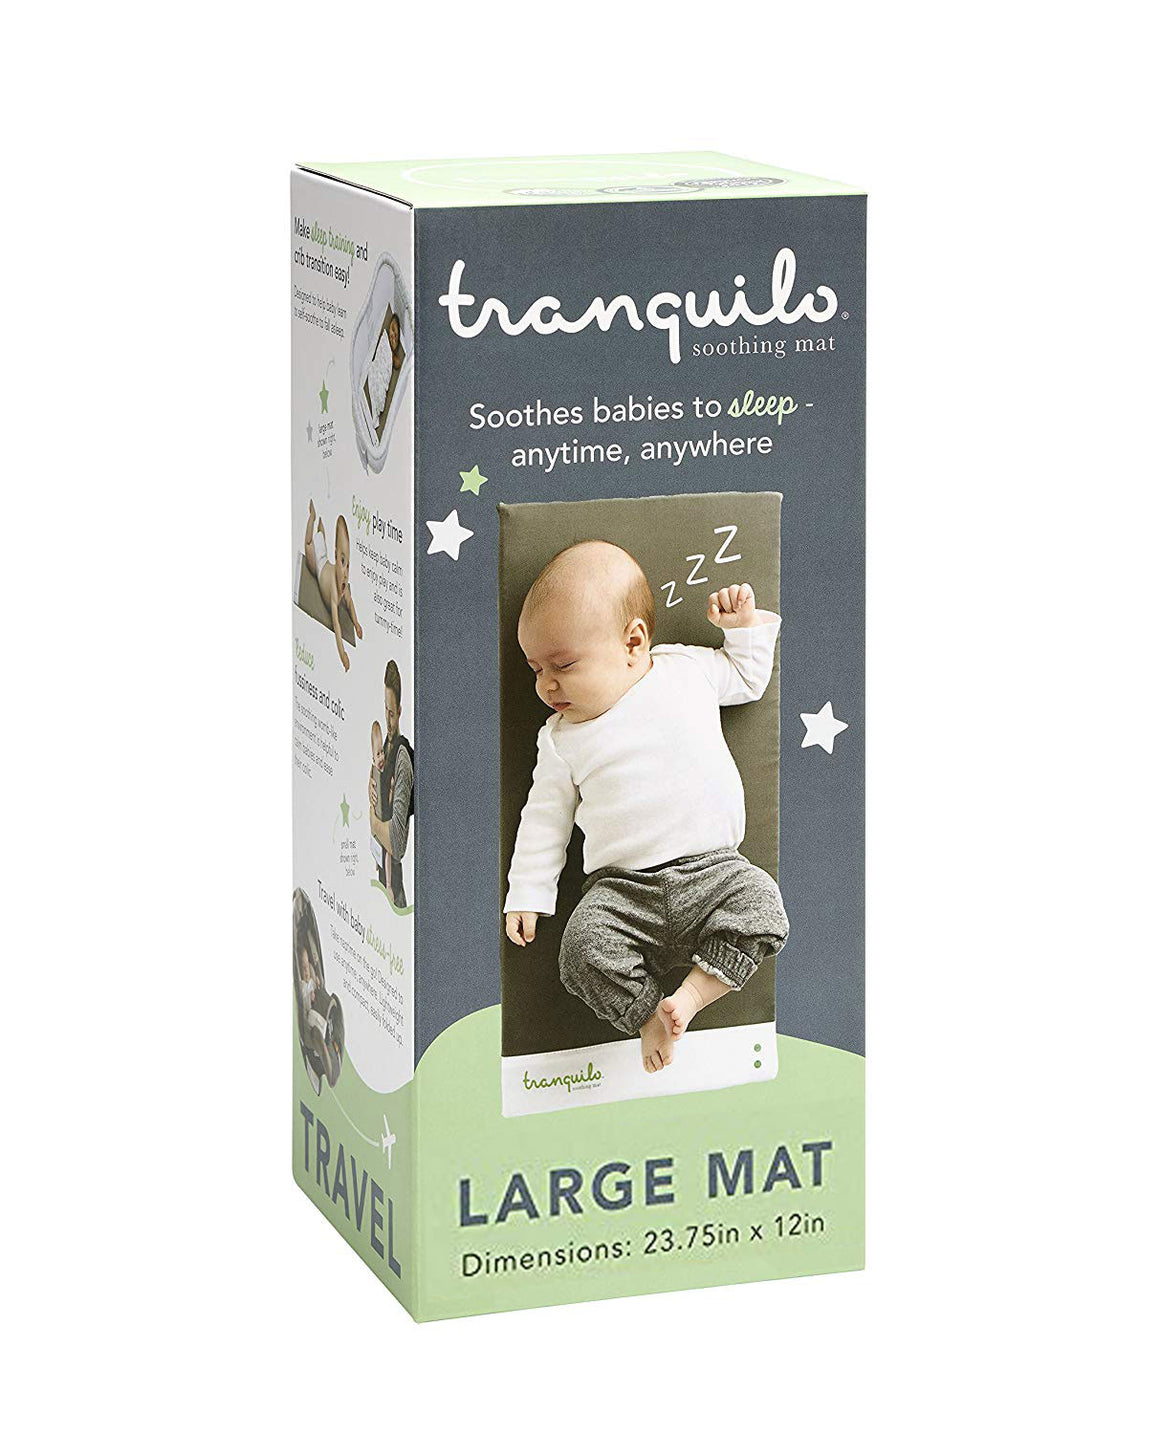 Tranquilo Large Soothing Mat